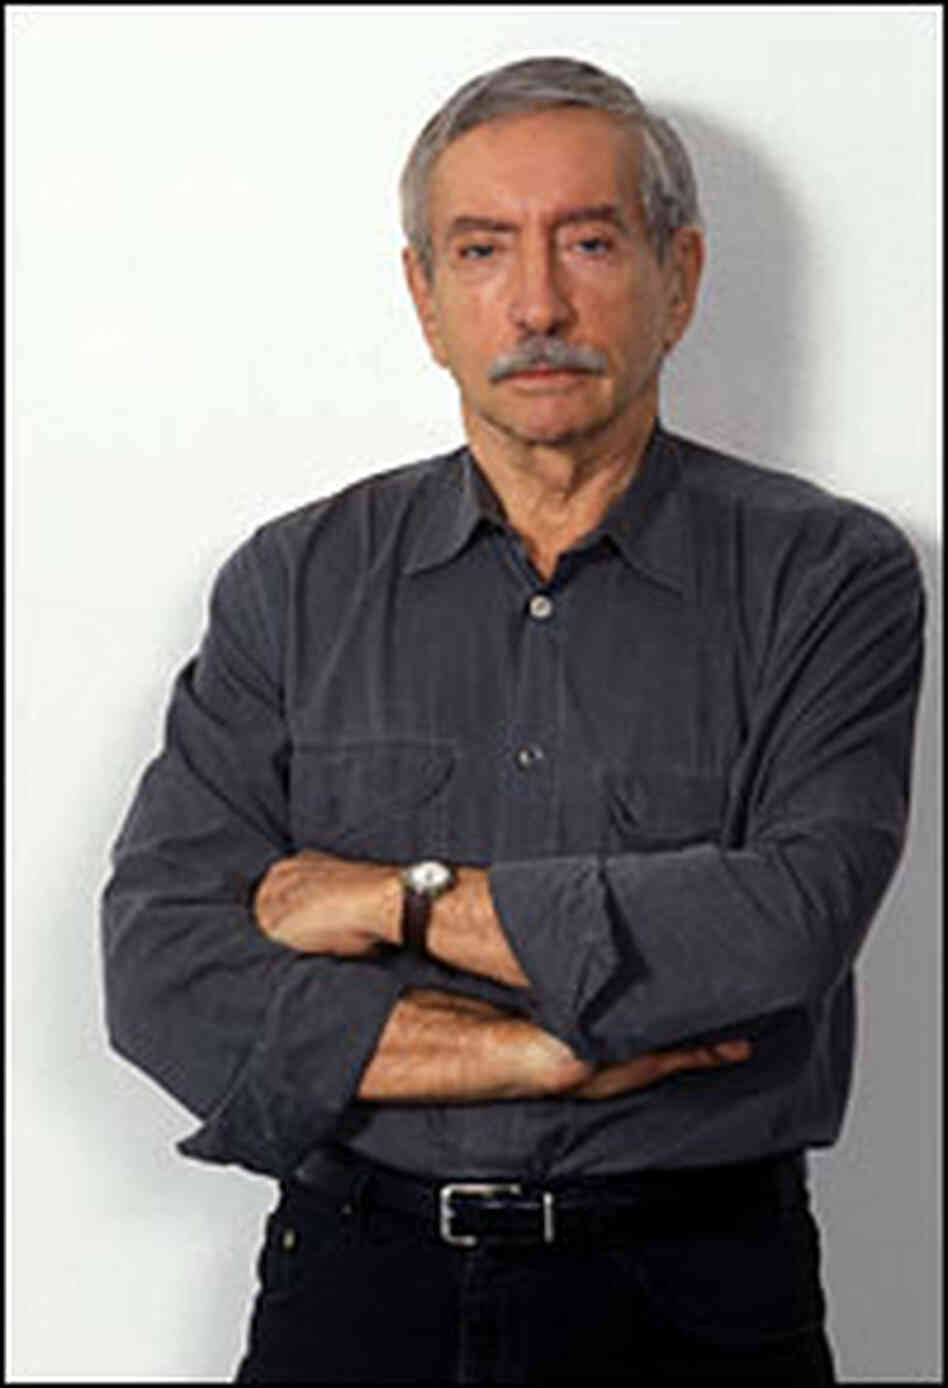 Edward Albee portrait, in casual shirt